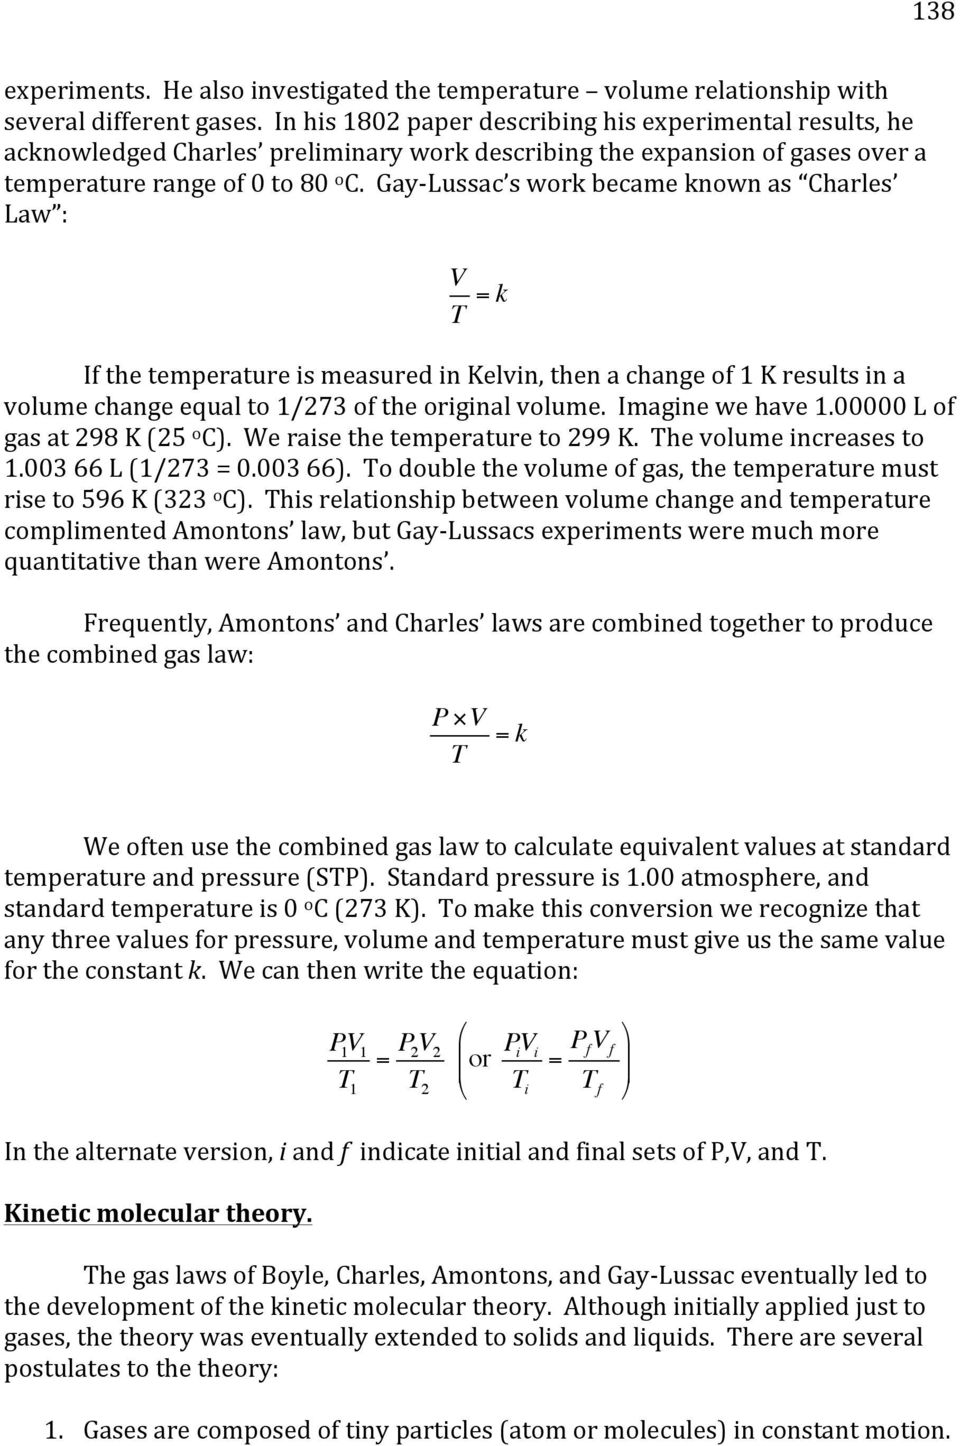 Ideal Gas Law Worksheet Answers   Homedressage further ideal gas law questions worksheet in addition IDEAL GAS LAW PRACTICE PROBLEMS   How to Solve Ideal Gas Law in addition ideal gases   Leon seattlebaby co furthermore Ideal Gas Law Practice Worksheet also Ideal Gas Law Worksheet   CSUN   PDF Free Download moreover GAS LAWS   SOLUTIONS together with Chapter 8  Gases and Gas Laws    PDF likewise Ideal Gas Law Problems   Key   7   P 315W R 5ng Po éfiz ZL' gU in addition Foothill High further 19 Best Images of Which Law Worksheet Answers   Gas Laws Worksheet further bined Gas Law Worksheet   Winonarasheed likewise Fillable Online Ideal Gas Law Worksheet PV nRT Fax Email Print furthermore Language Arts Worksheets Grade Chemistry For 6 Igcse in addition Ideal Gas Law Practice Worksheet Fresh Ideal Gas Behavior Avogadro besides . on ideal gas law worksheet pdf